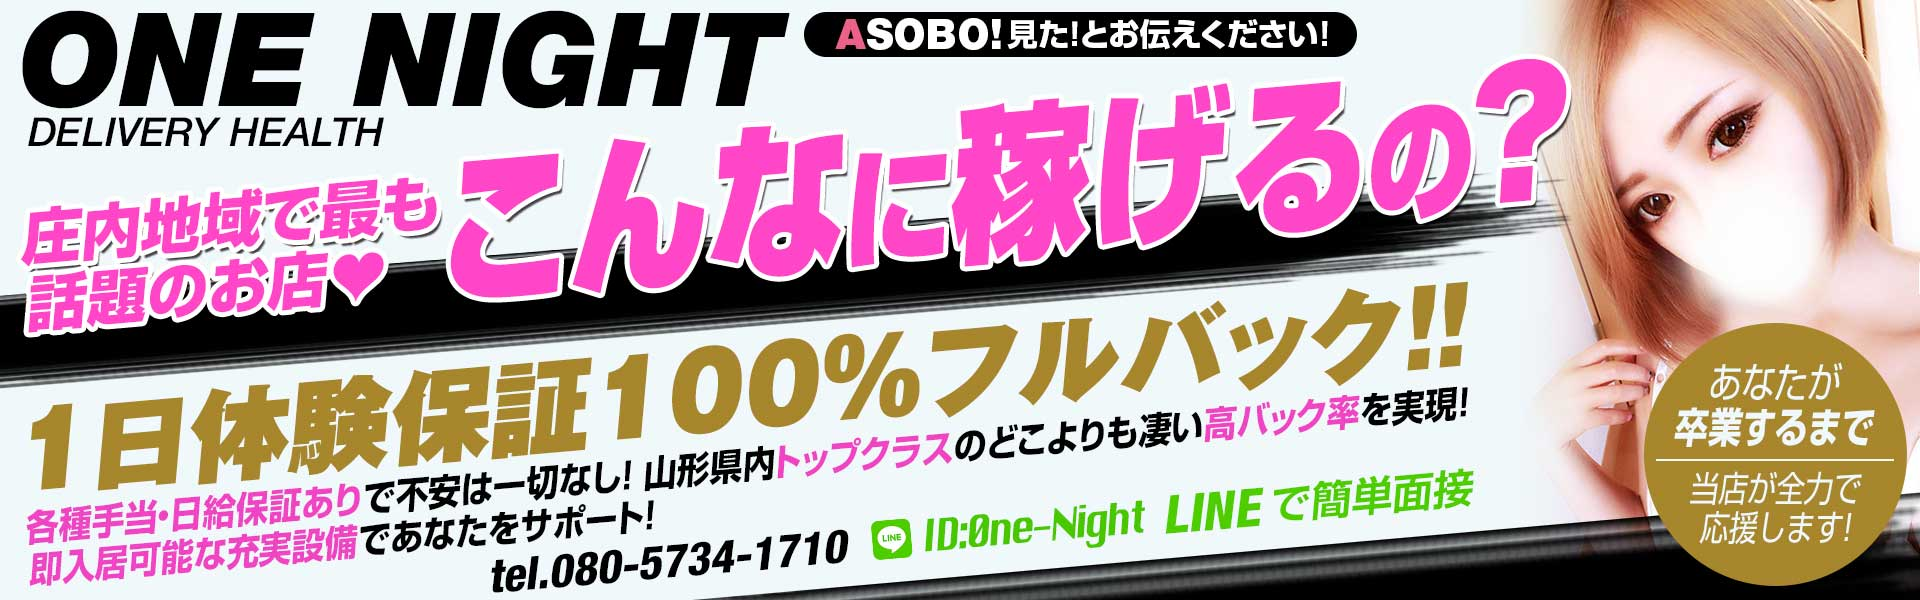 ONE NIGHT-ワンナイト-